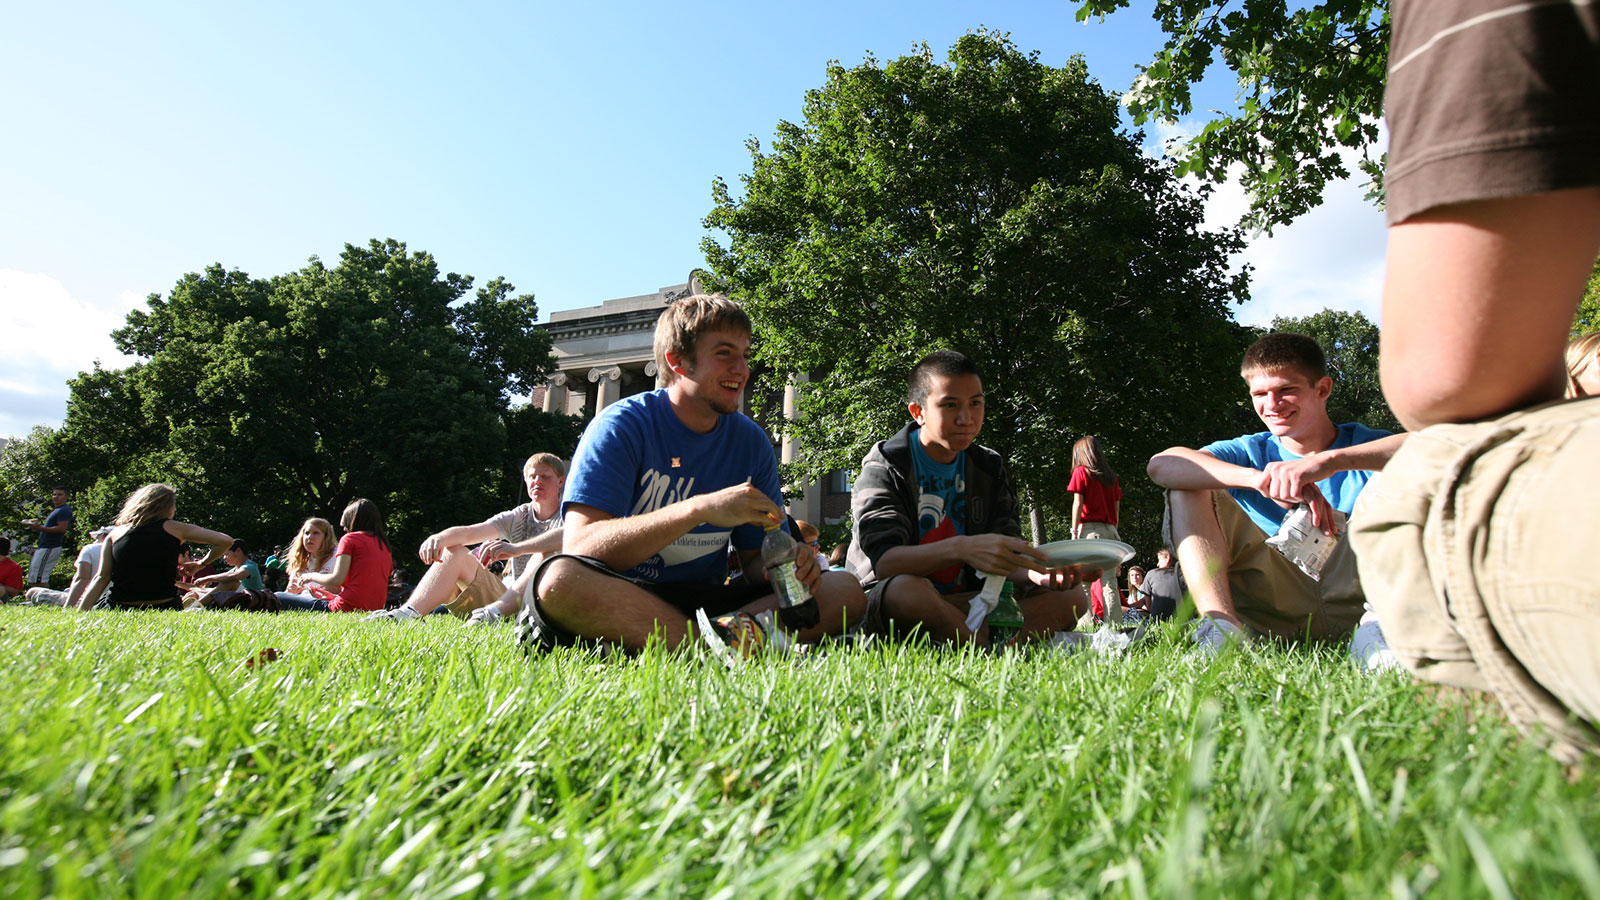 Students sitting in the grass